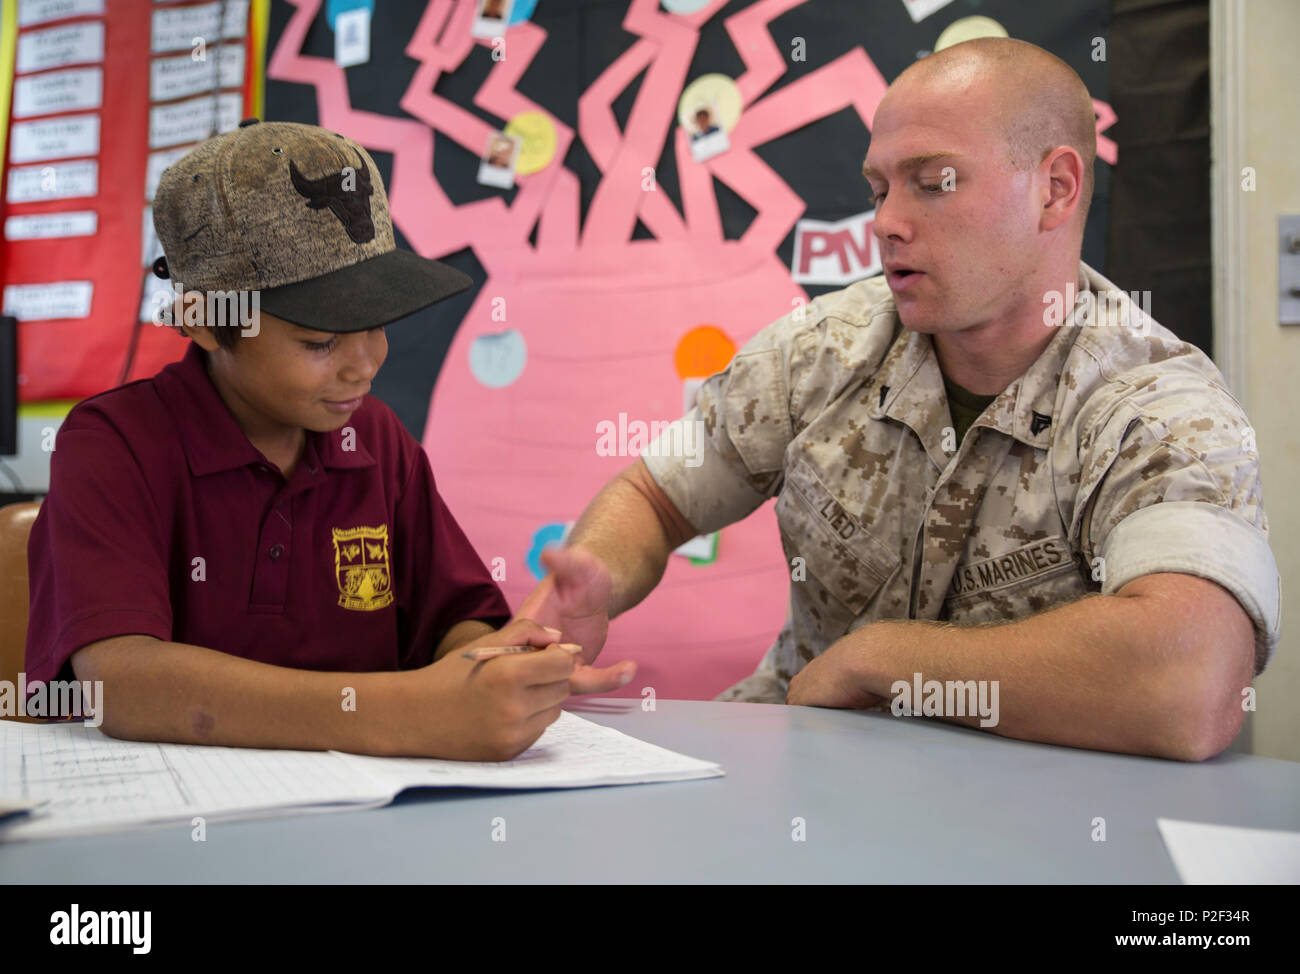 U.S. Marine Corps Cpl. Landis Lied, an embarkation and logistics specialist assigned to Marine Fighter Attack Squadron (VMFA) 122, helps a student with multiplication at MacFarlane Primary School in Katherine, Northern Territory, Australia, Sept. 1, 2016. Marines are invited to mentor and teach students every iteration of Southern Frontier, a three week unit level training conducted by U.S. Marines at Royal Australian Air Force Base Tindal. The primary school's student population is 92 percent indigenous and is very transient. Classes are designed to provide students structure and a consolidat - Stock Image